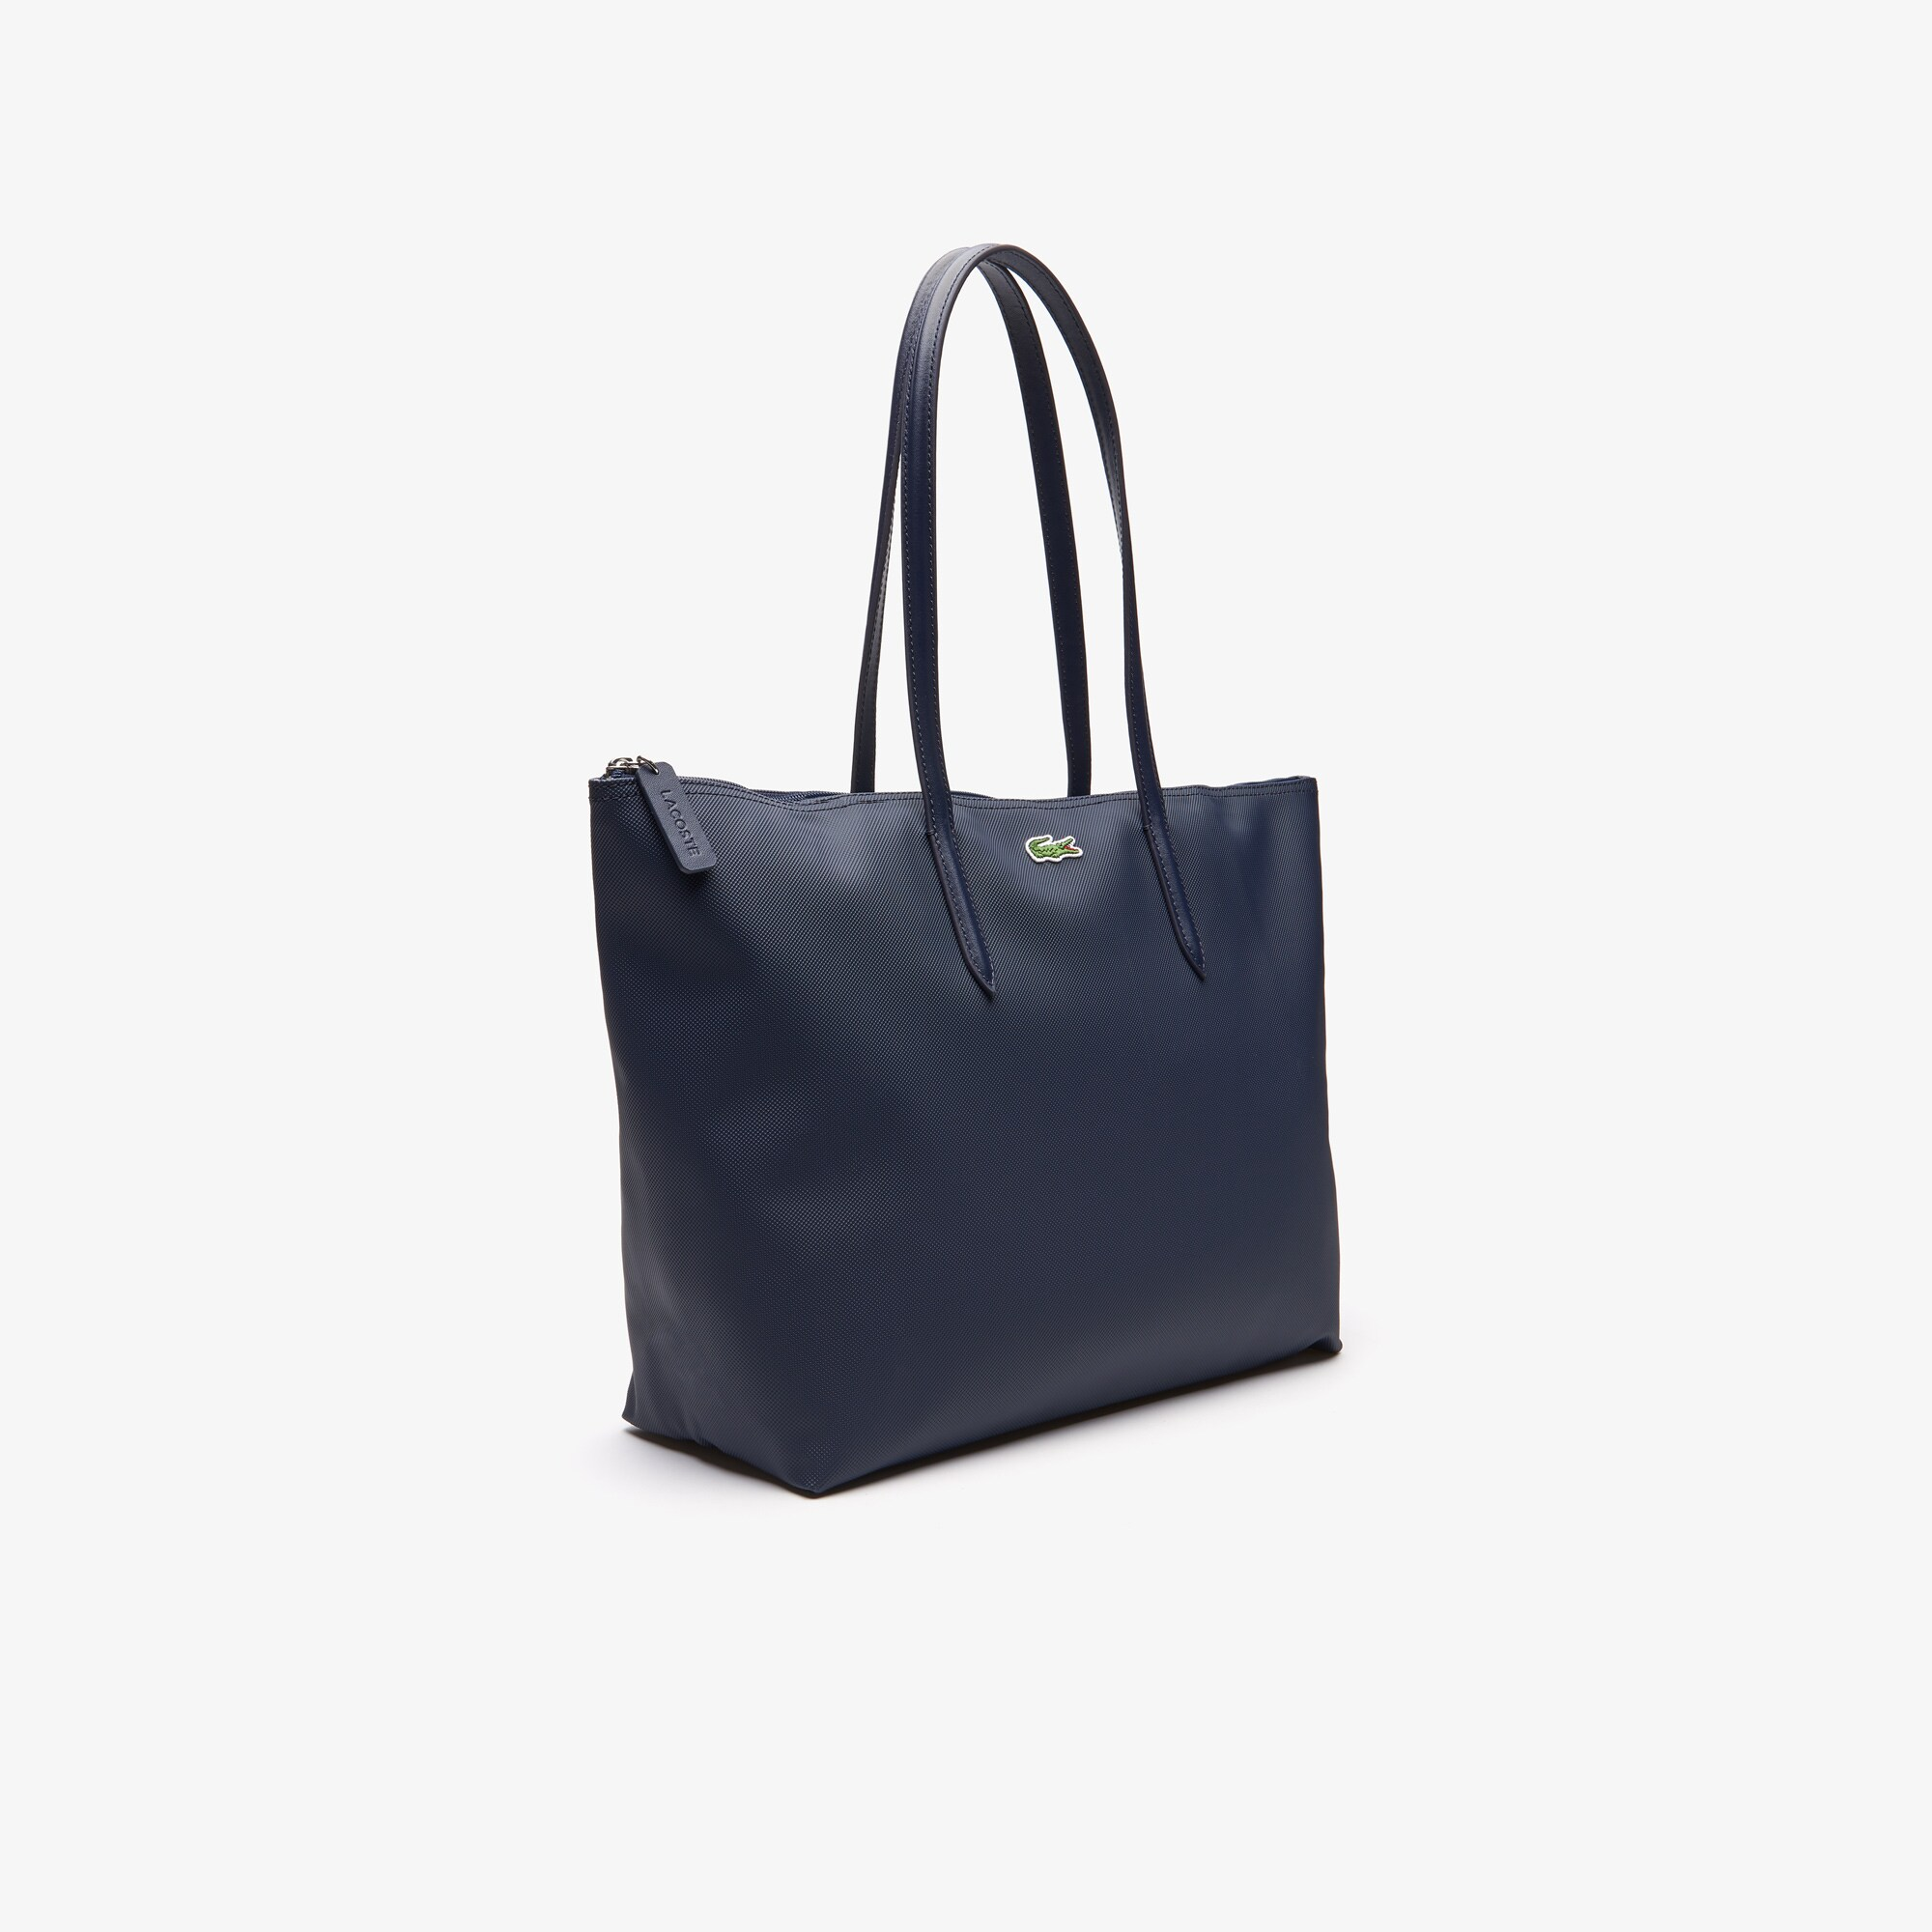 Women's L.12.12 Concept Zip Tote Bag